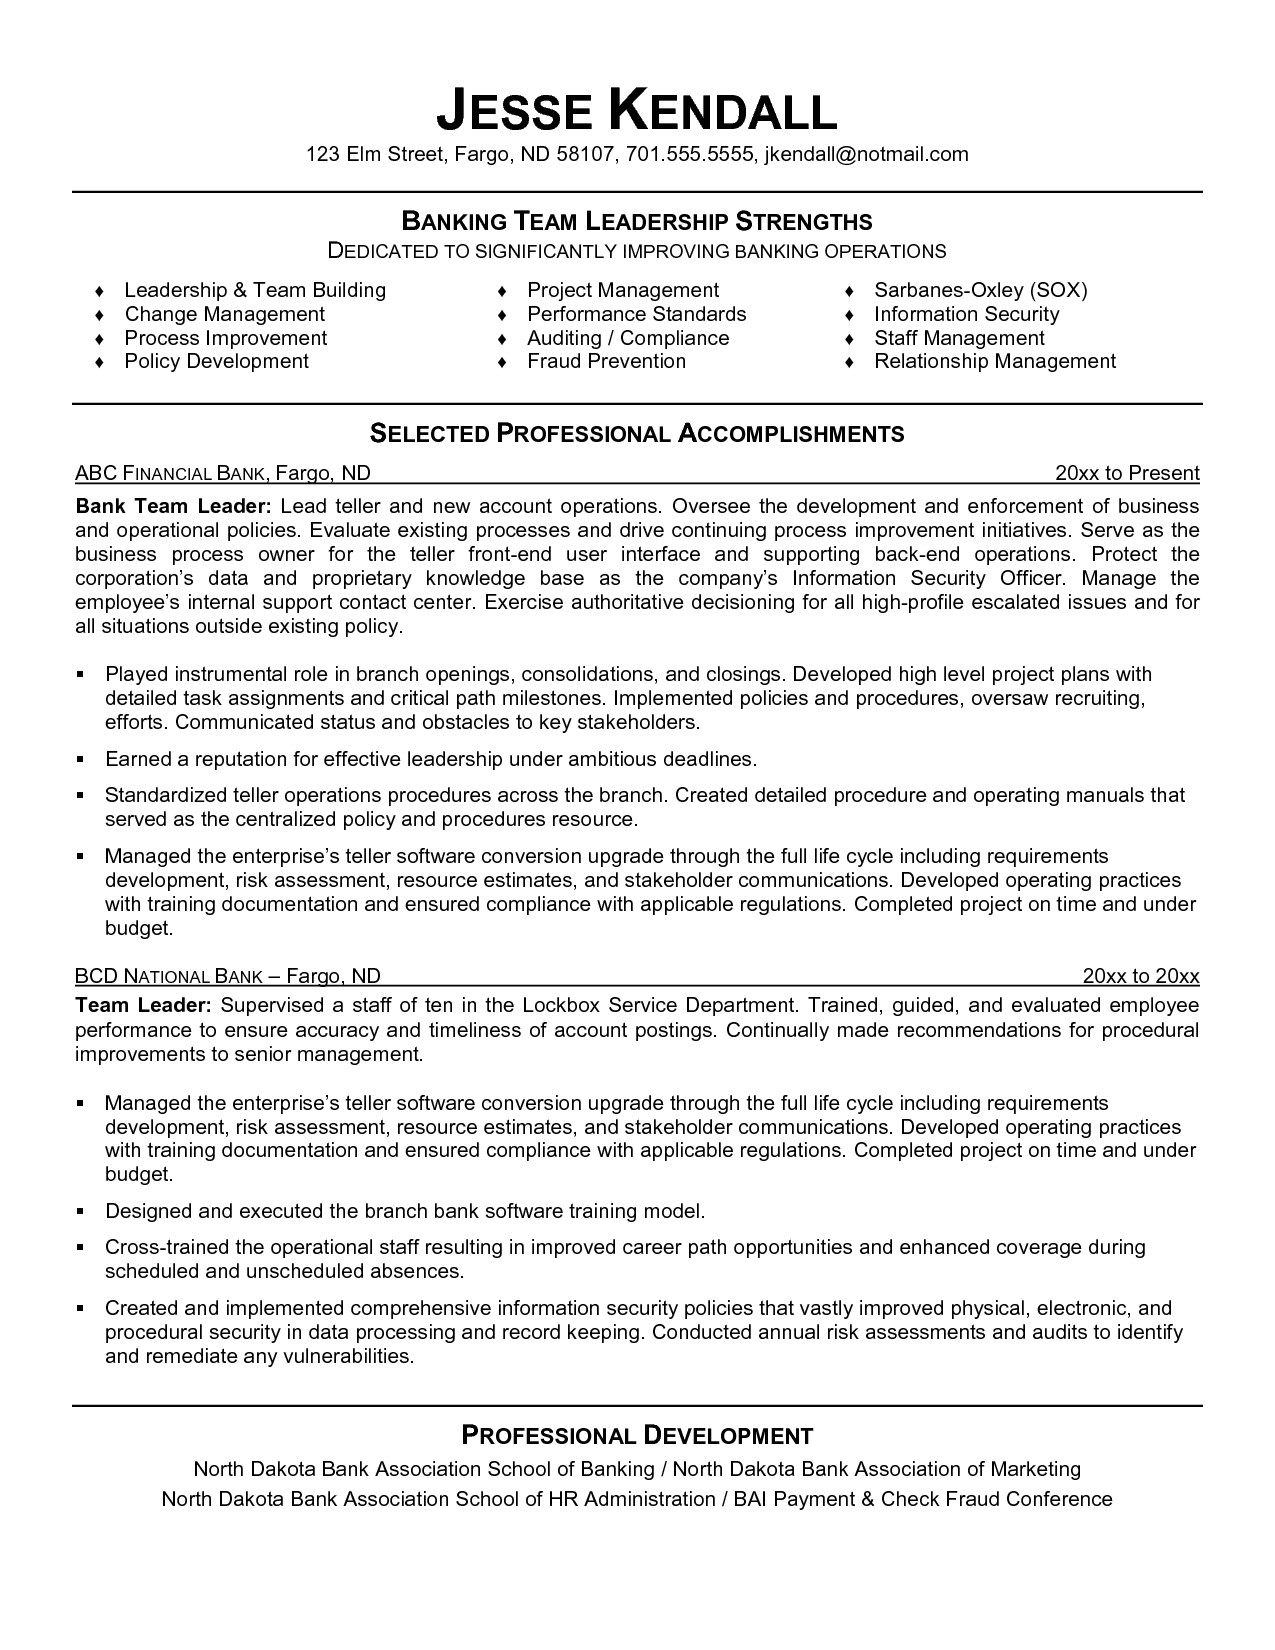 worship leader resumes awesome cover letter for educational leadership images cover letter ideas